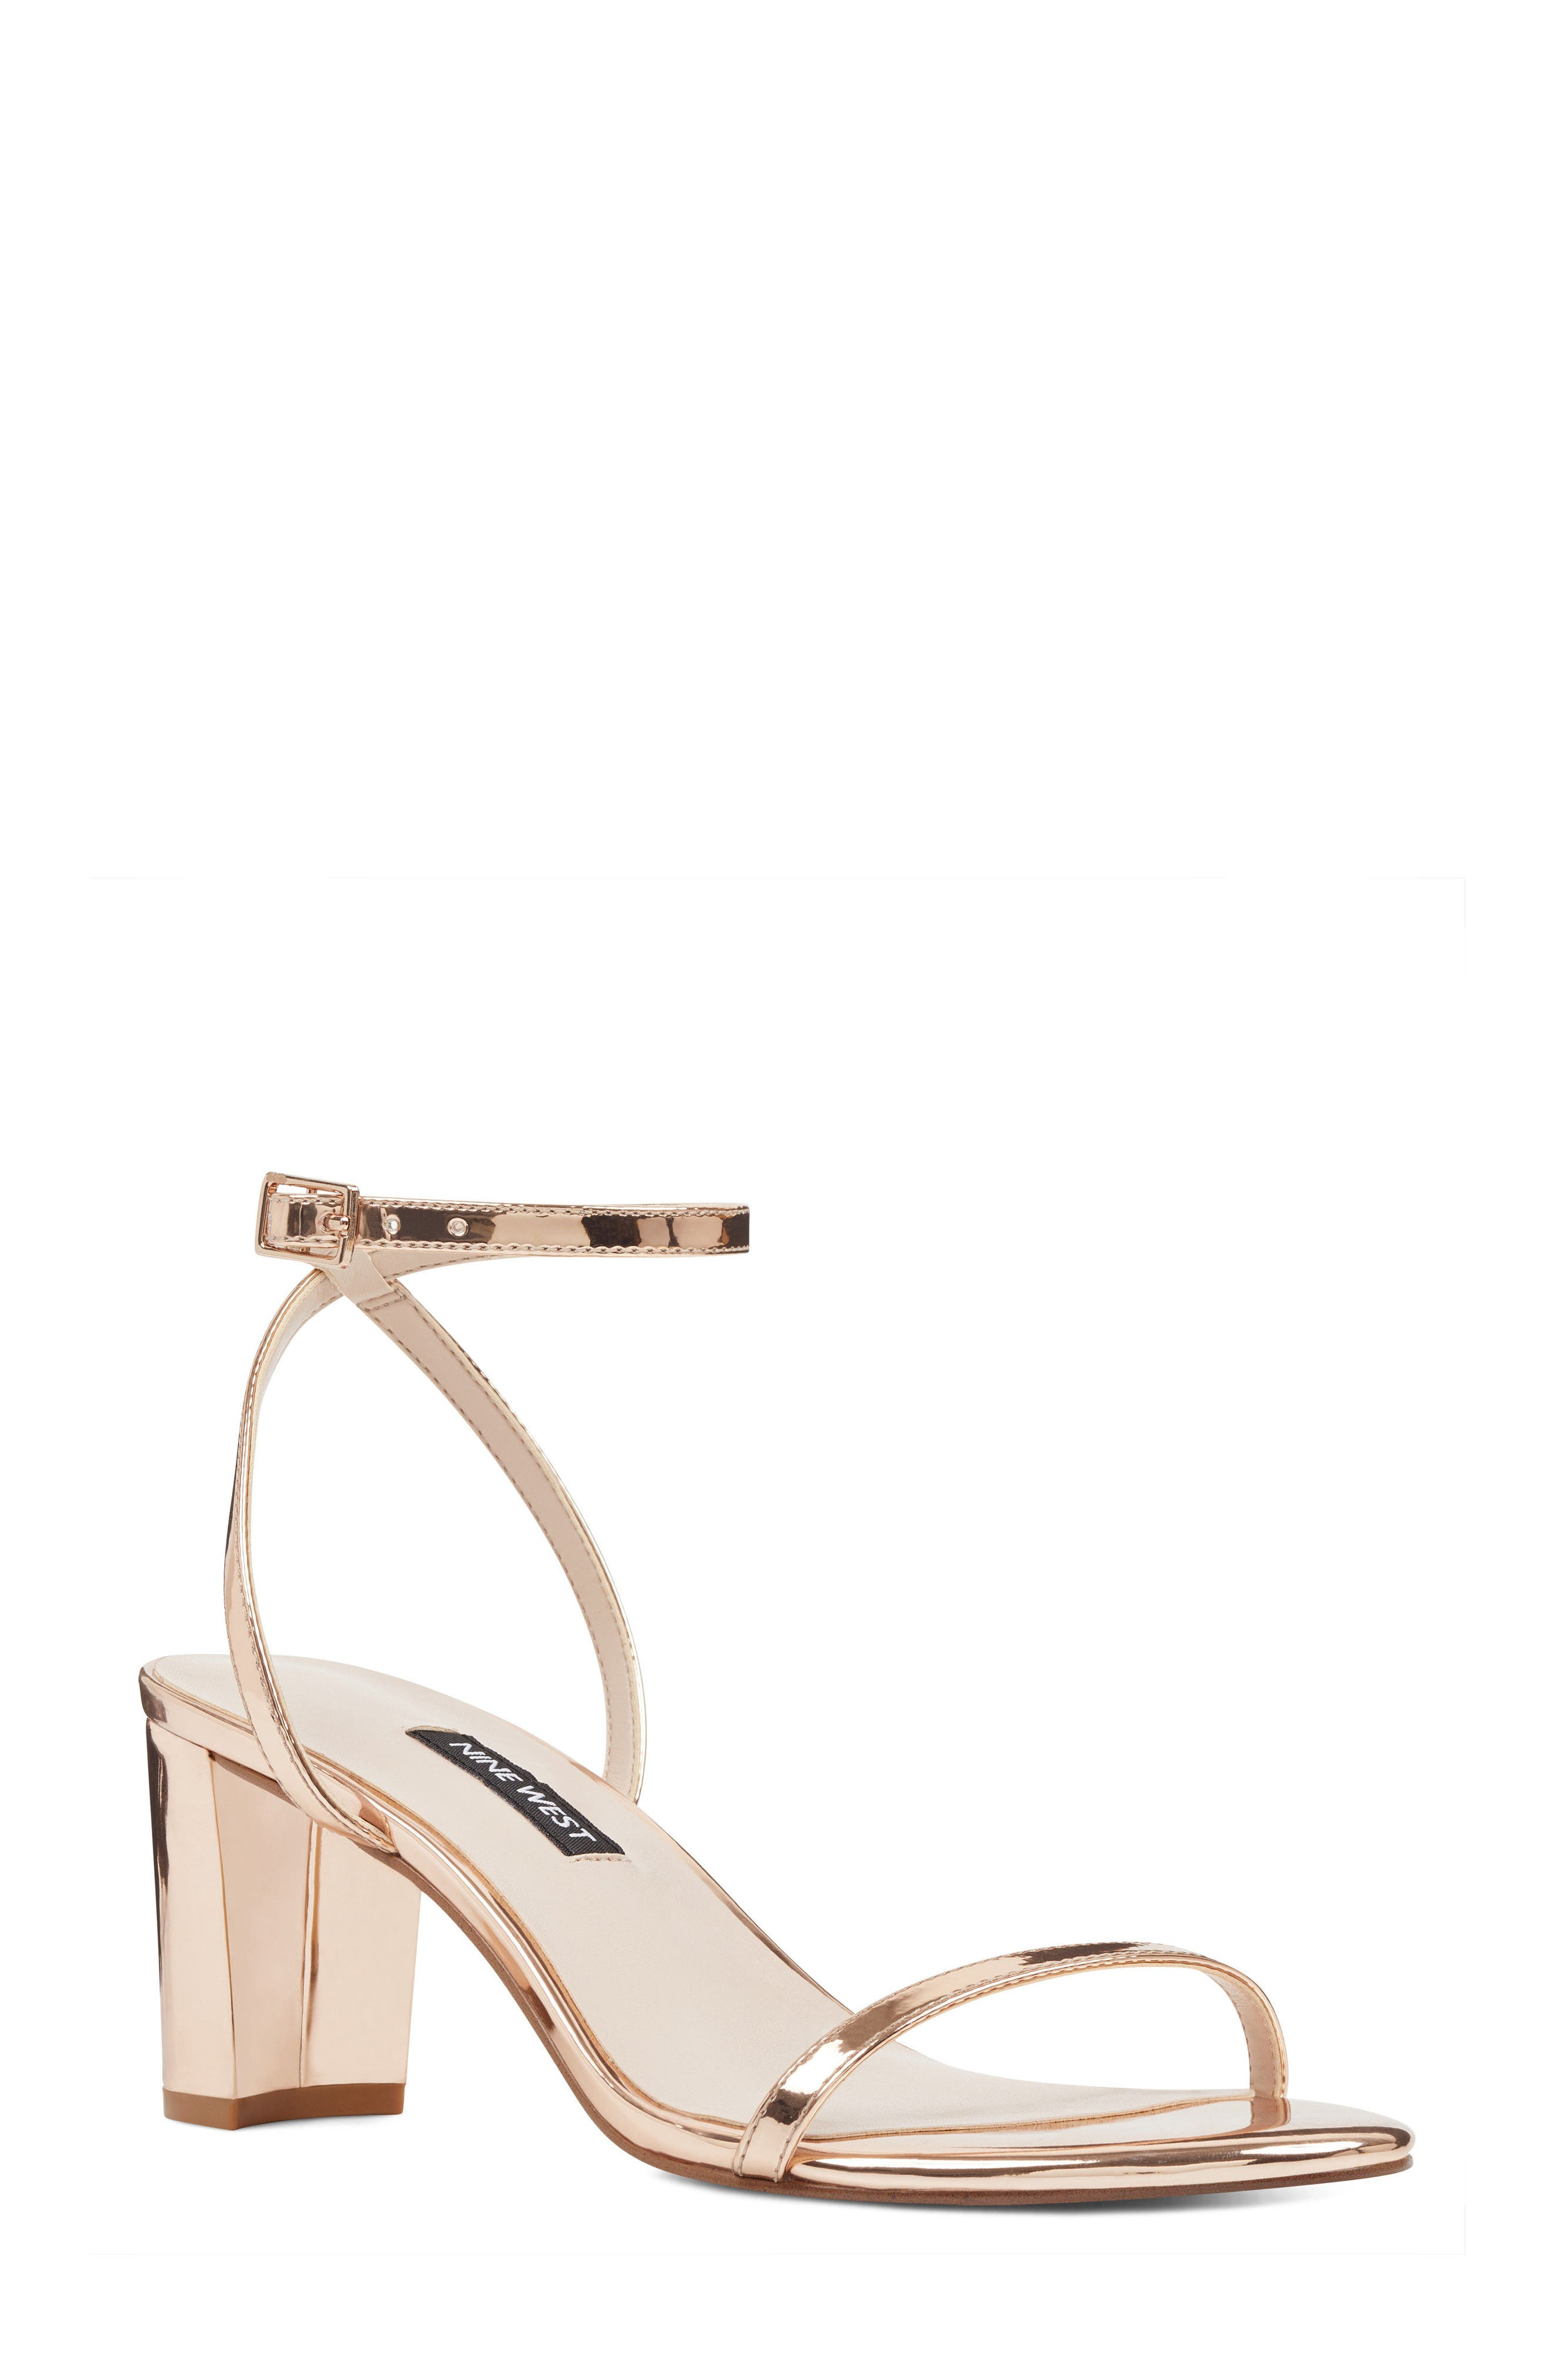 Provein Strappy Sandal,                         Main,                         color, Pink Faux Leather